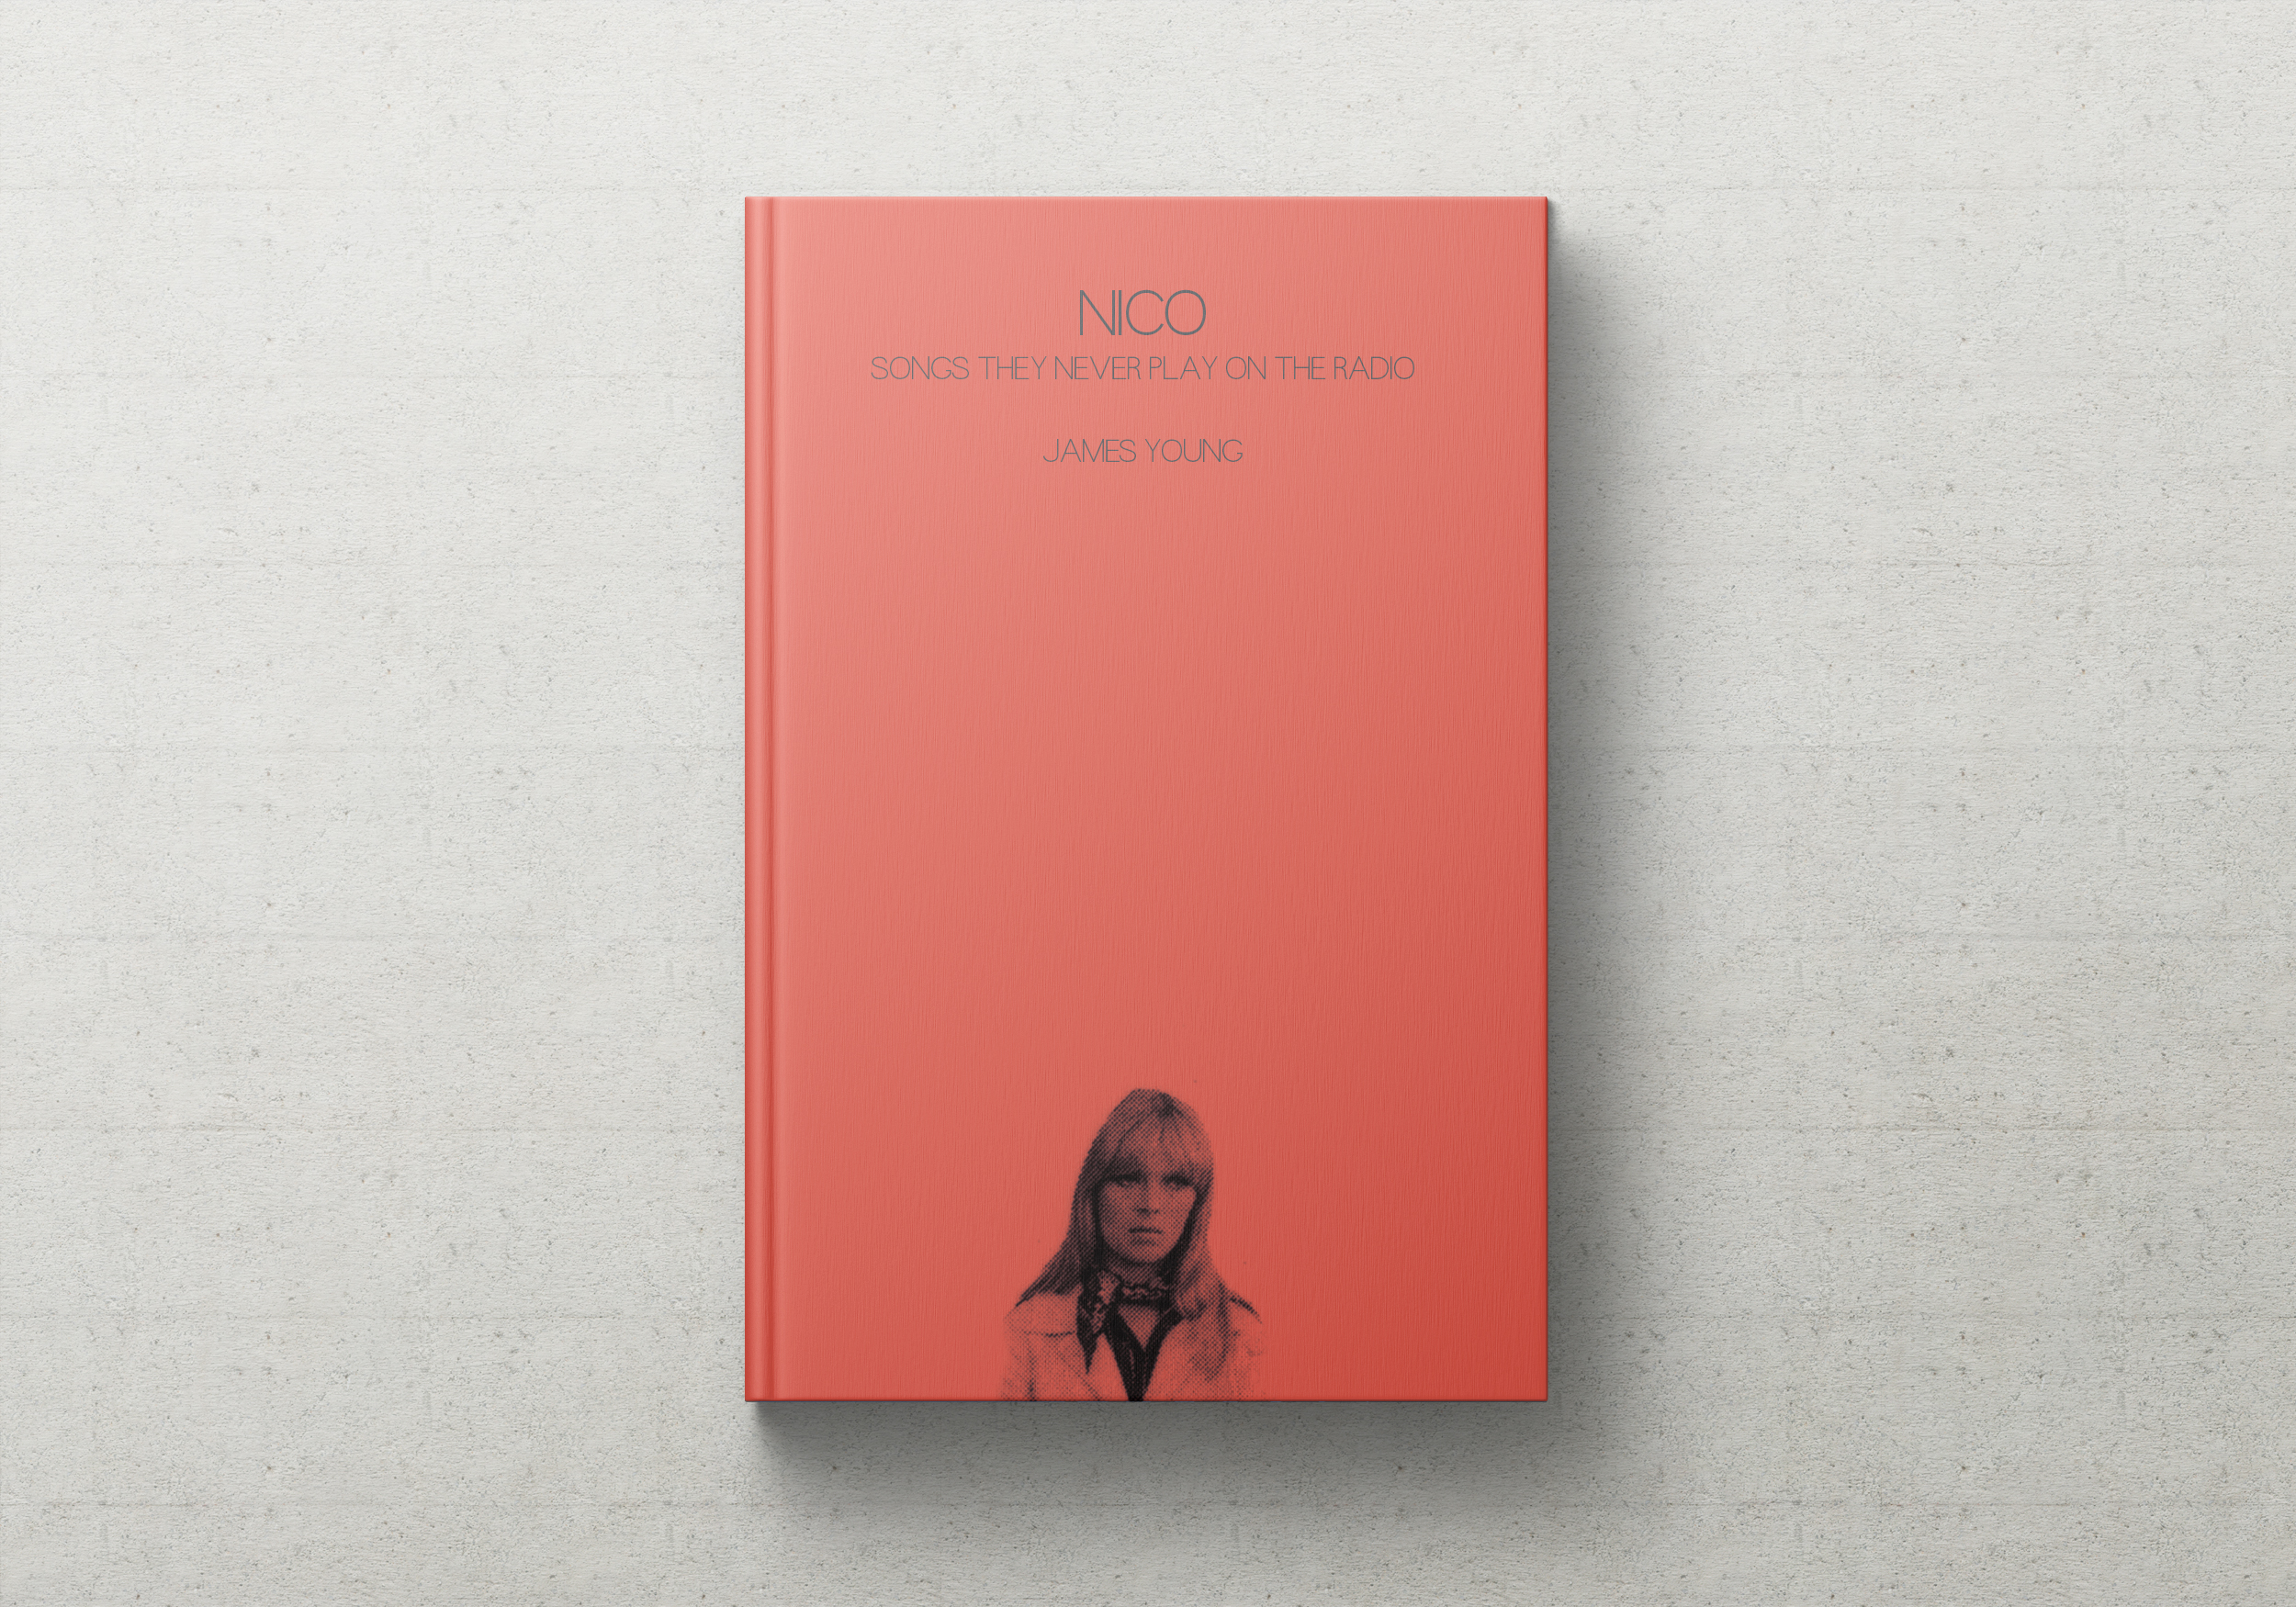 NICO SONGS THEY NEVER PLAY ON THE RADIO James Young